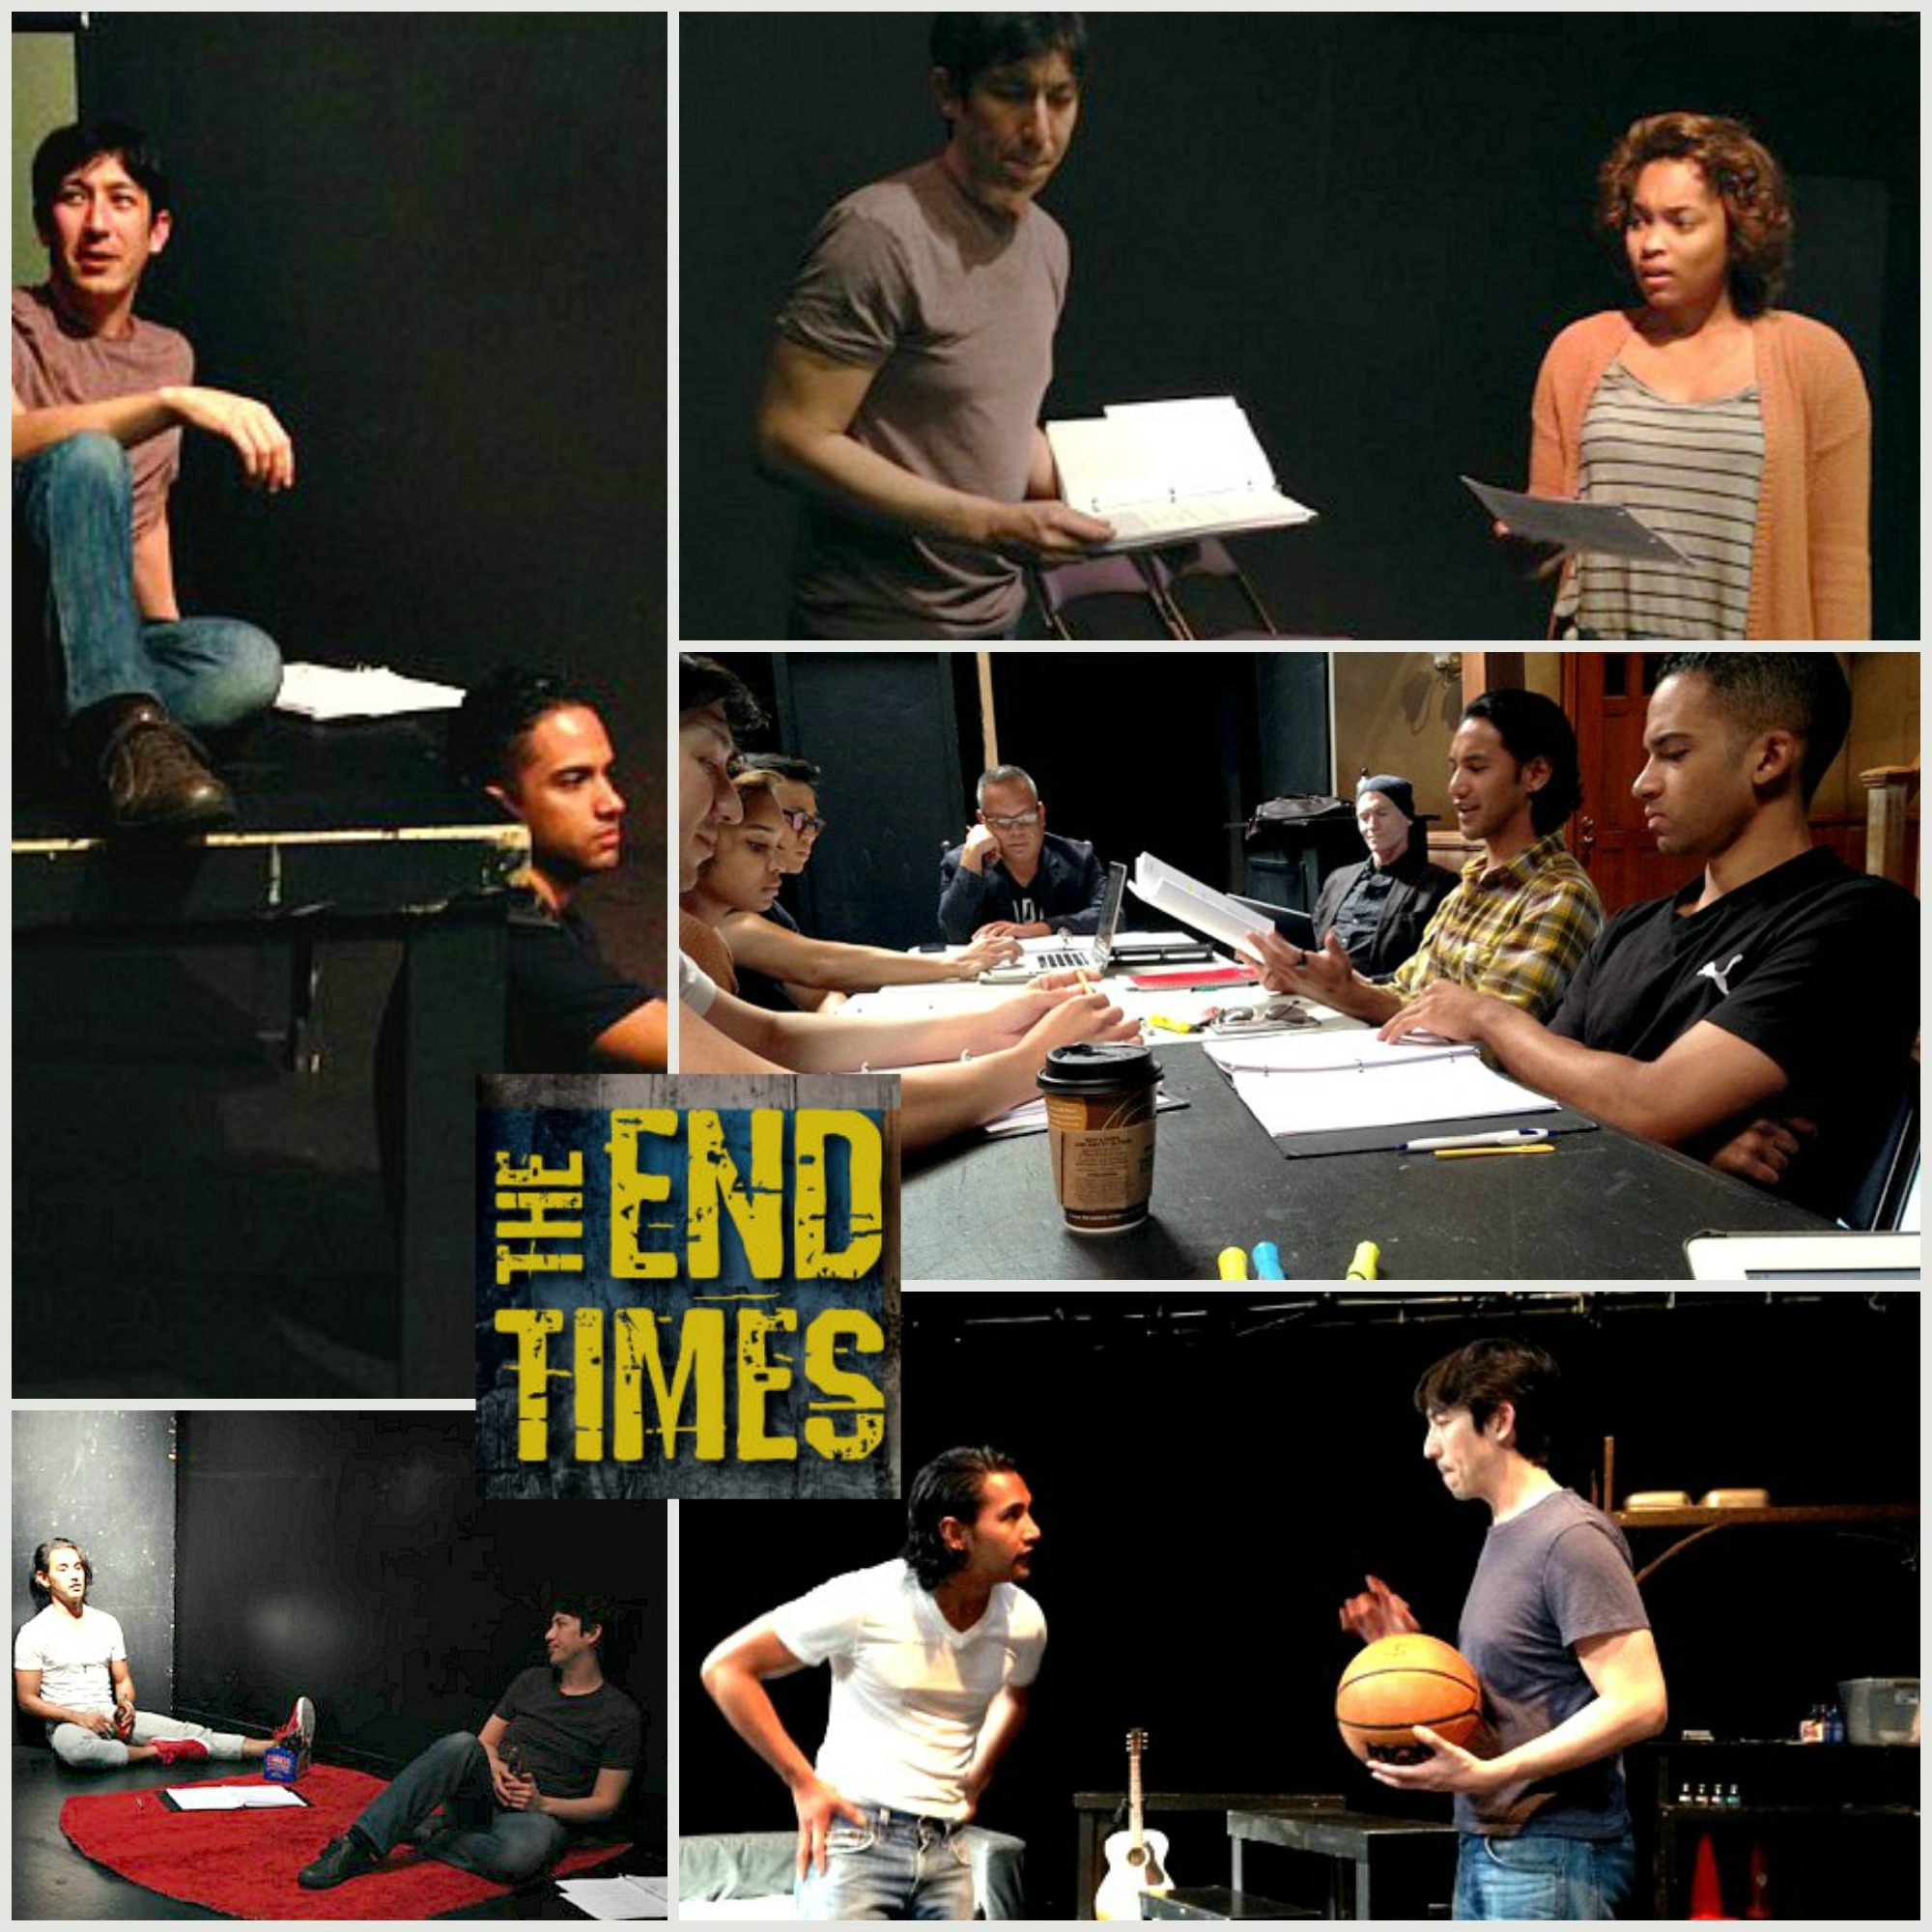 The End Times rehearsal photos